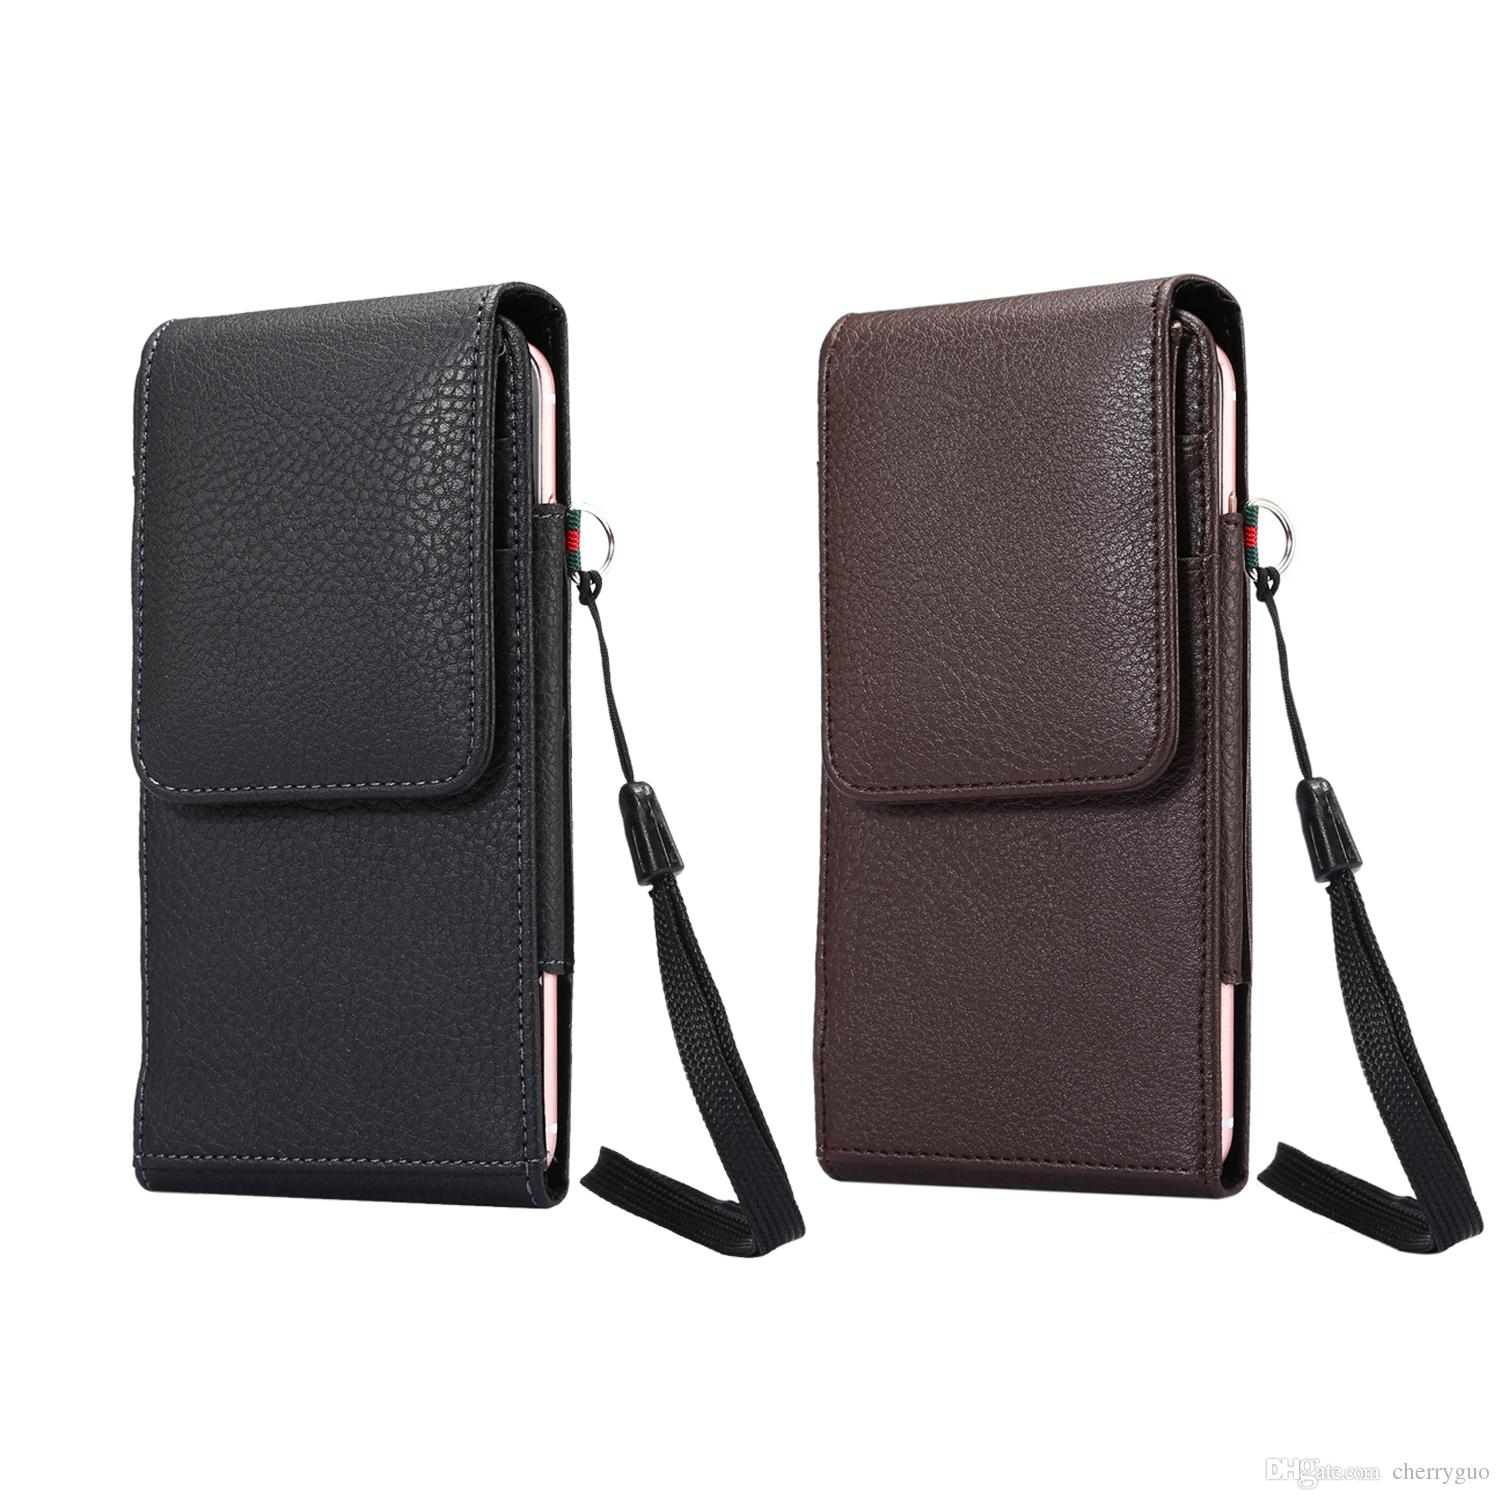 Universal Phone Belt Pouch Case, Vertical Litchi Pattern PU Leather Waist Belt Clip Case with Card Slots and Rope